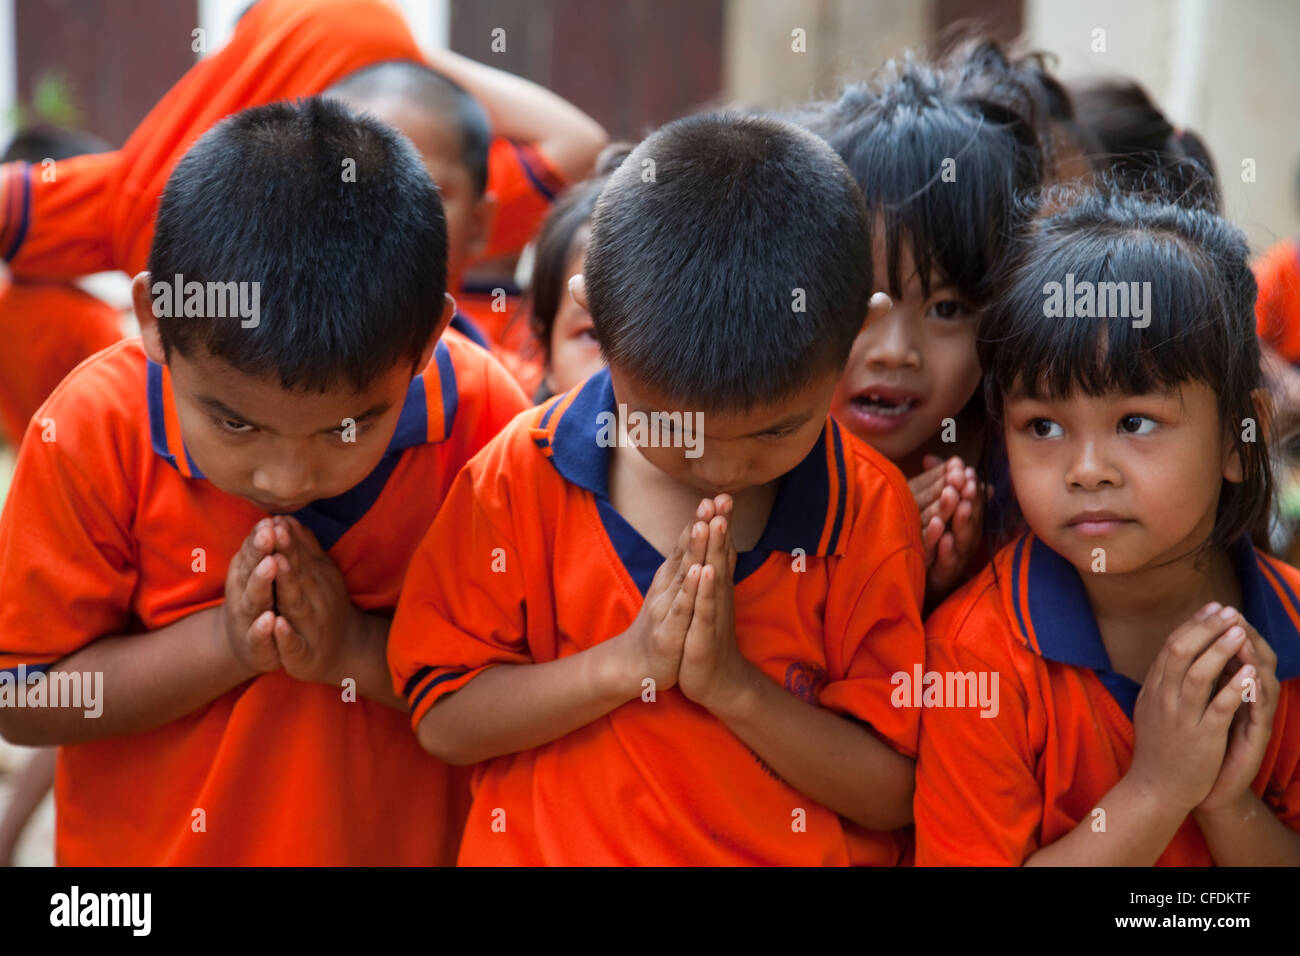 School children in uniform welcome visitors with wai greeting, near Kanchanaburi, Thailand Stock Photo